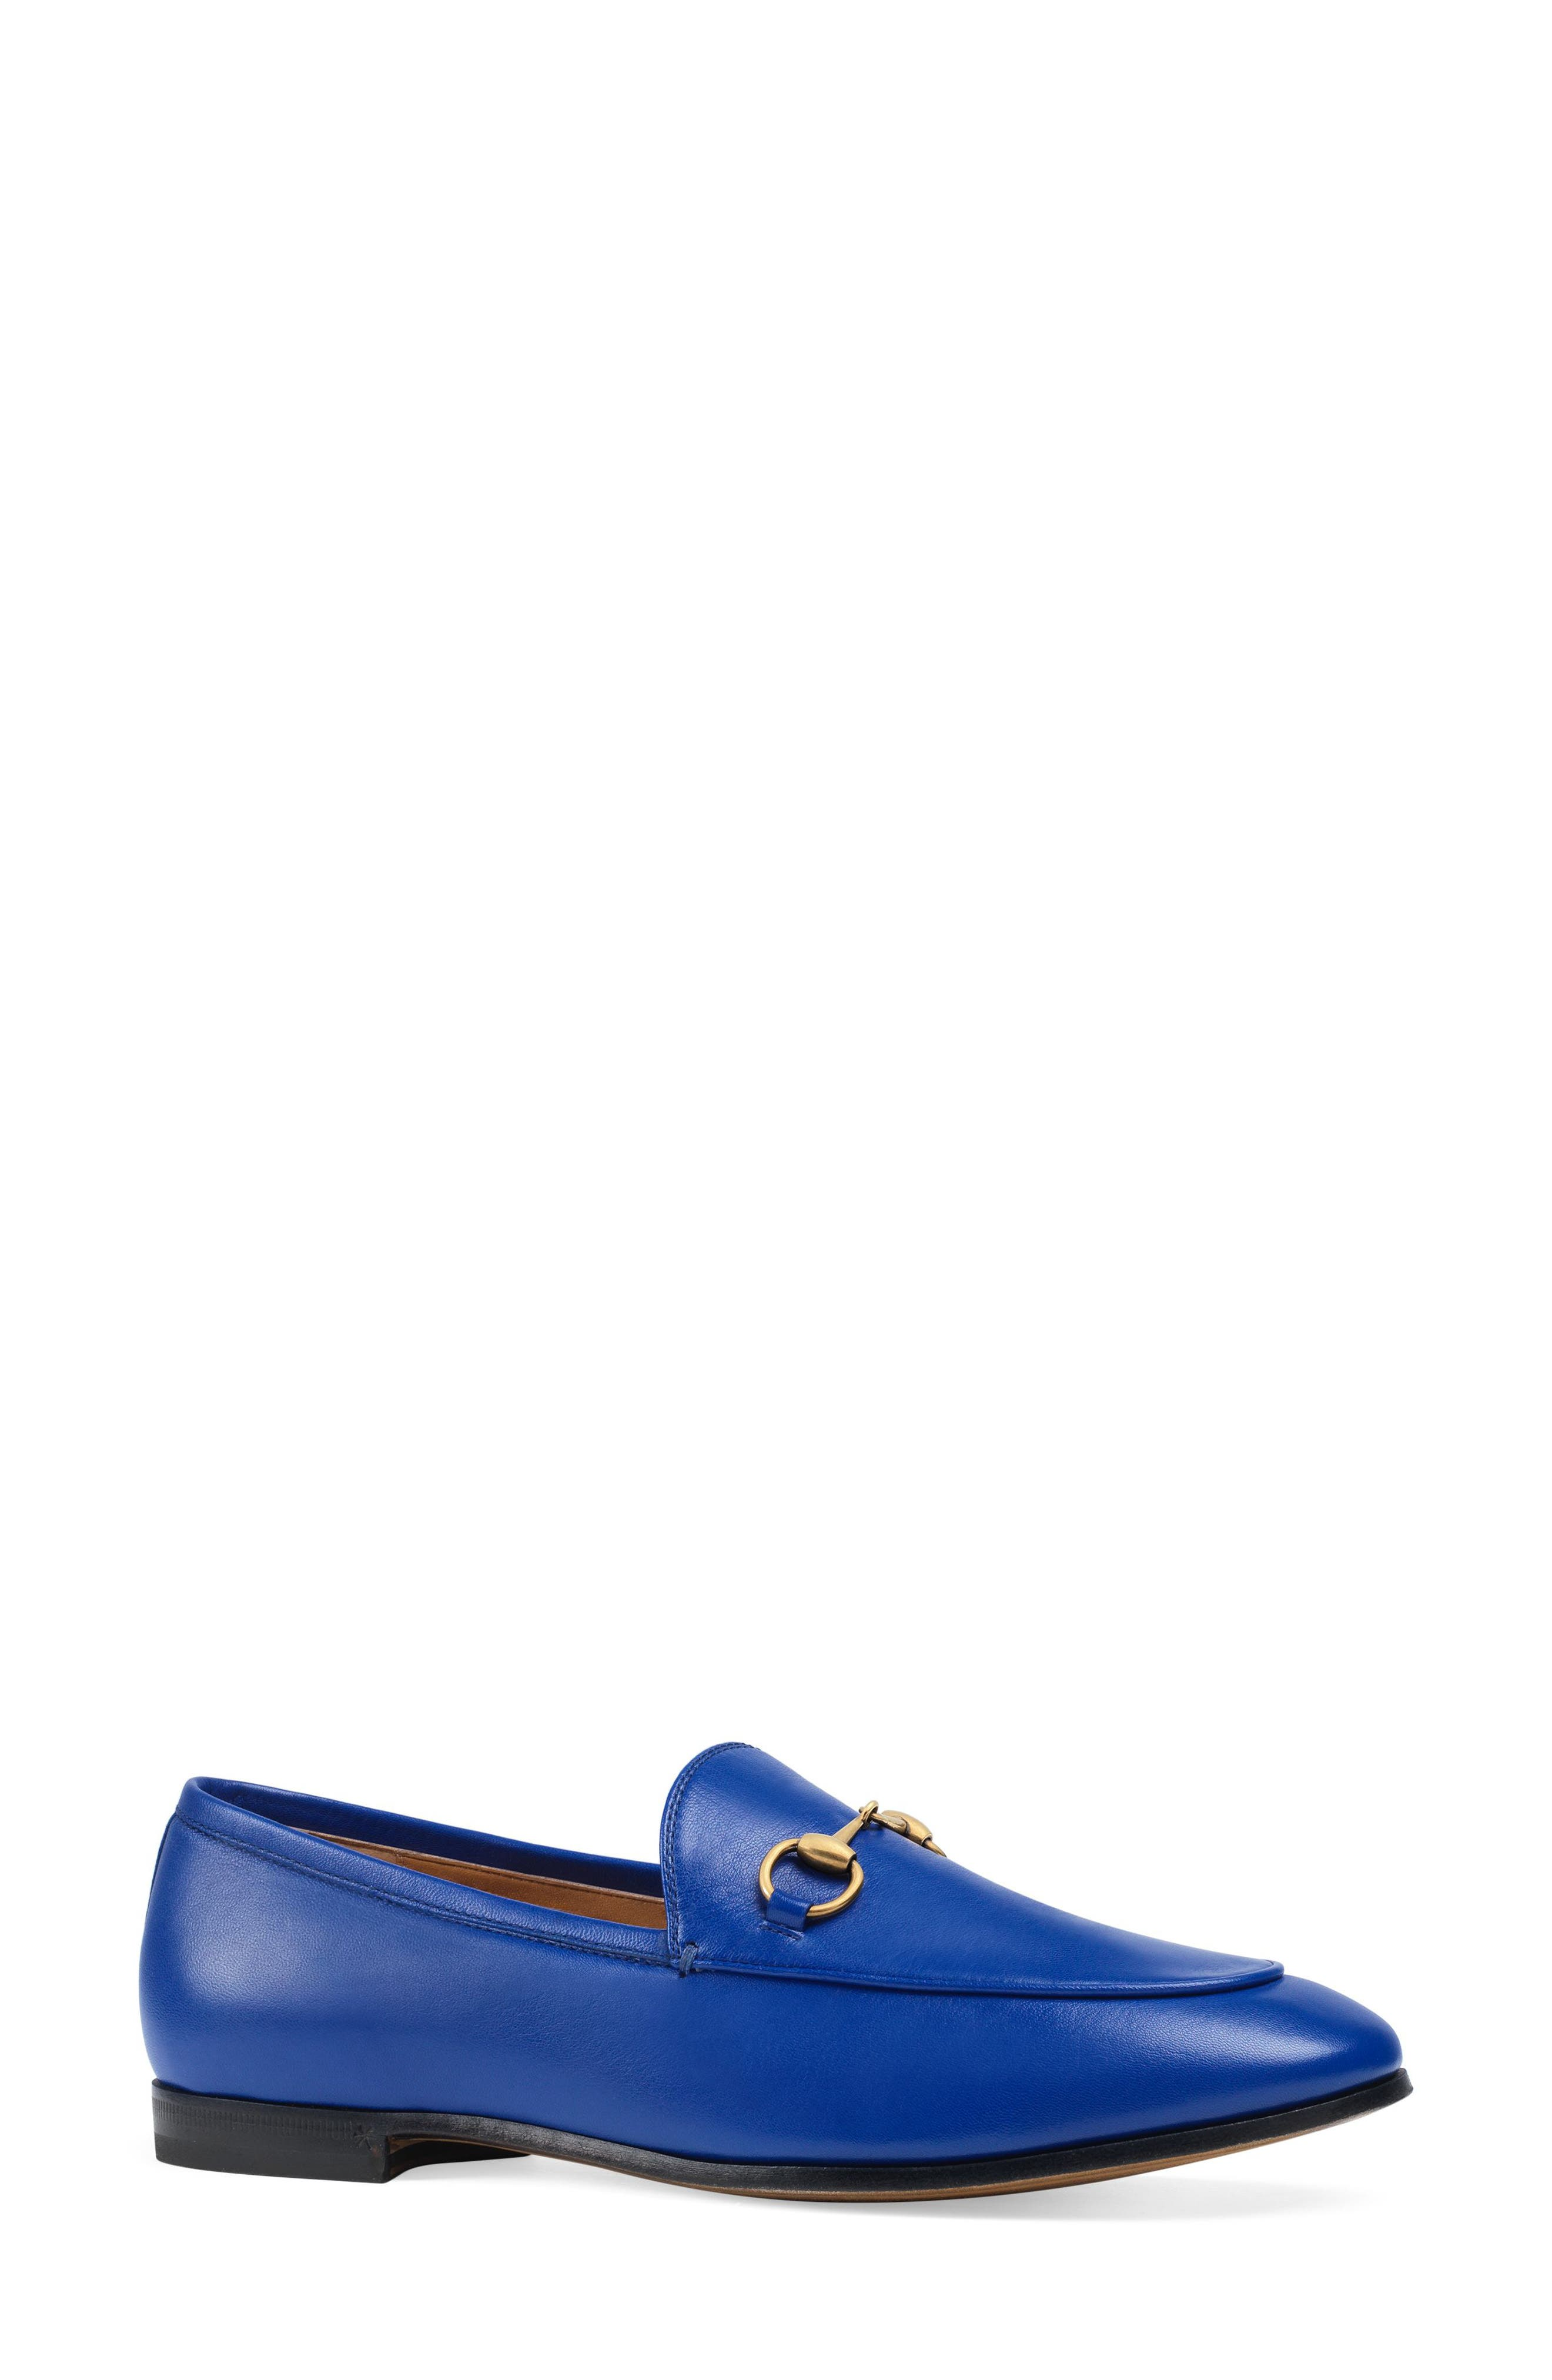 'Jordaan' Loafer,                             Main thumbnail 1, color,                             ELECTRIC BLUE